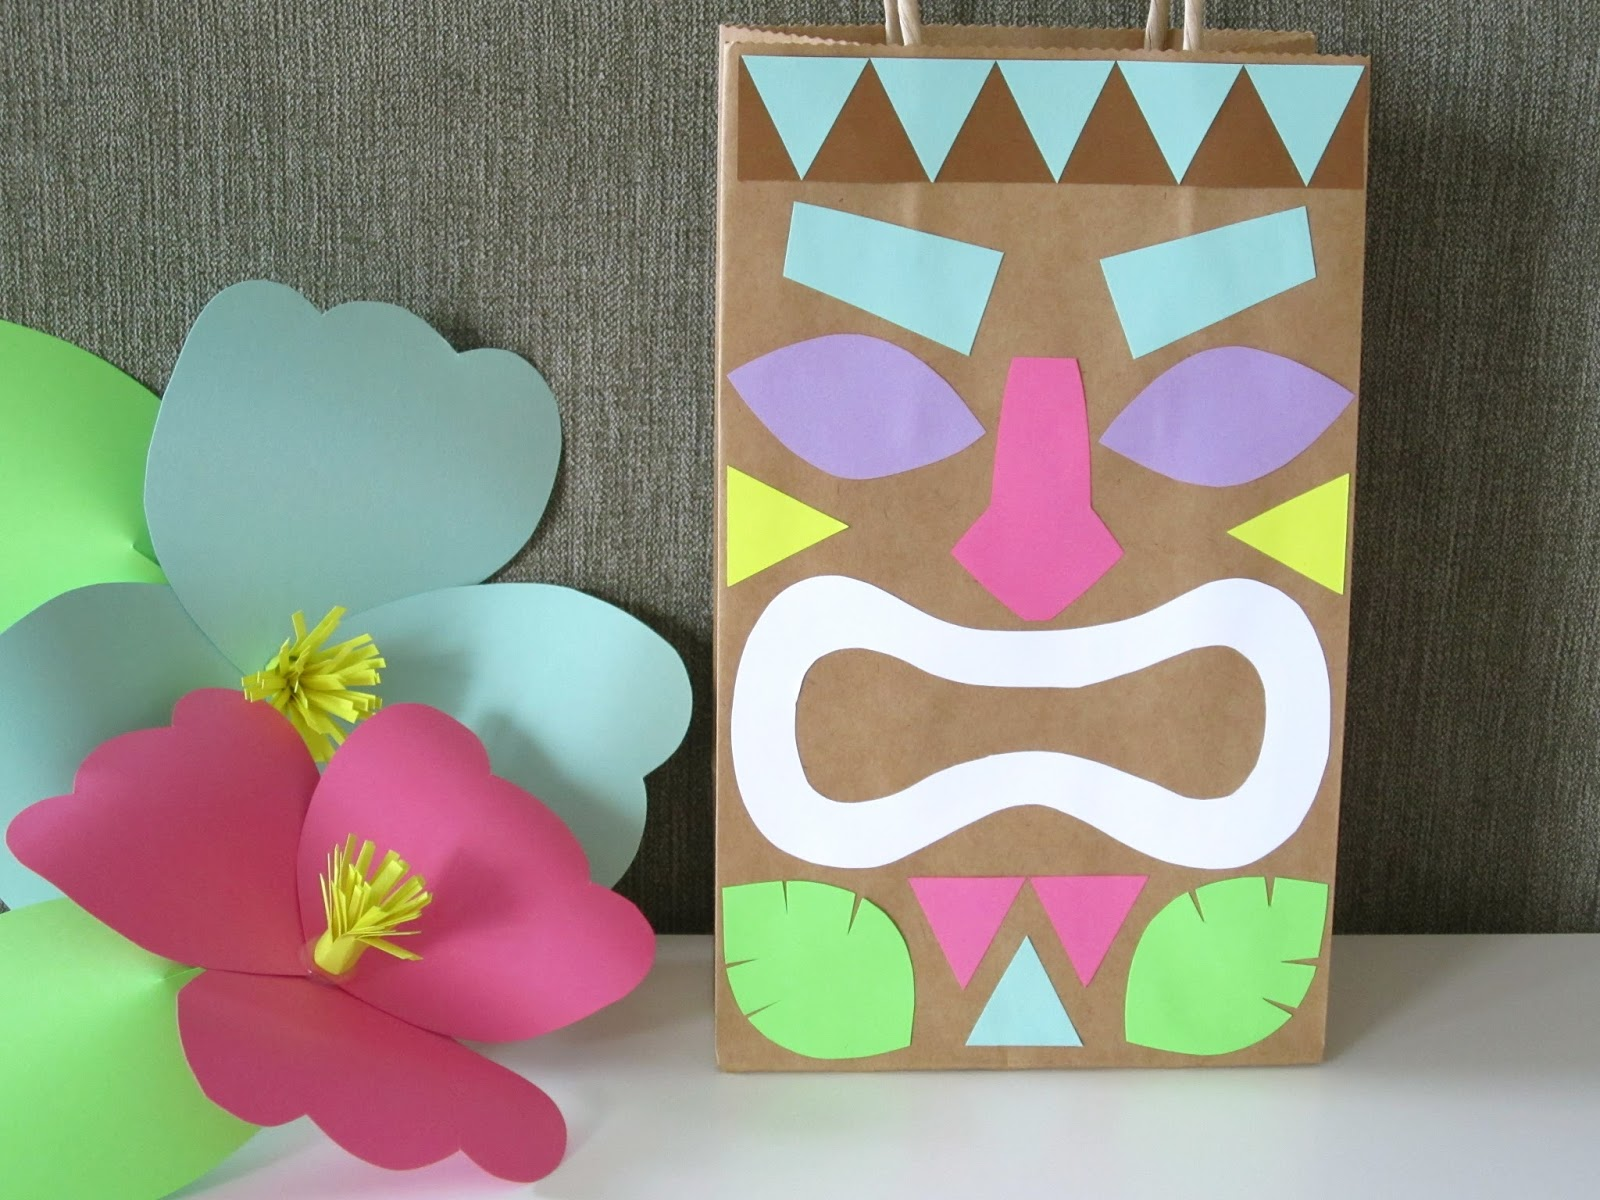 Homemade Luau Party Paper Bag Tiki Guy!: design sprinkle